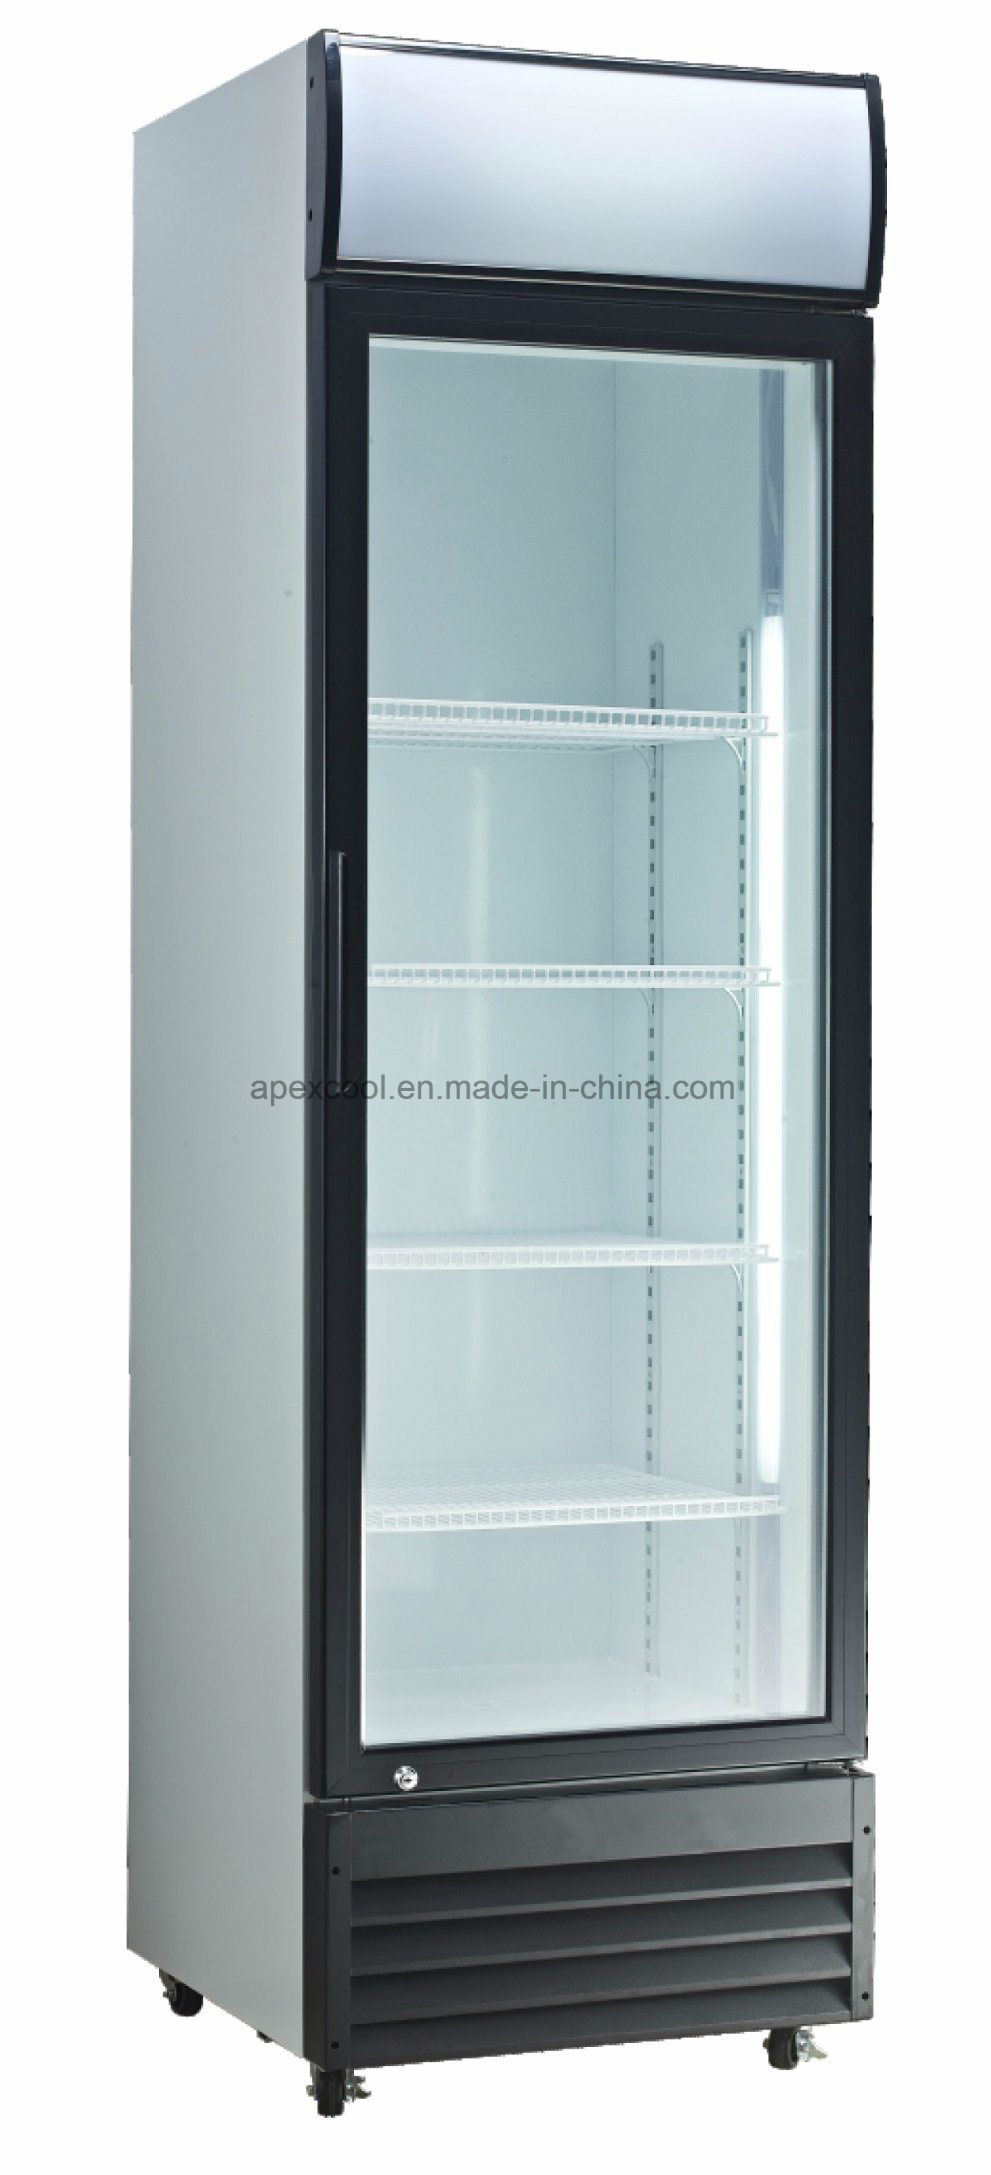 China Commercial Used Beverage Cooler Glass Door For 380l Refrigeration Upright